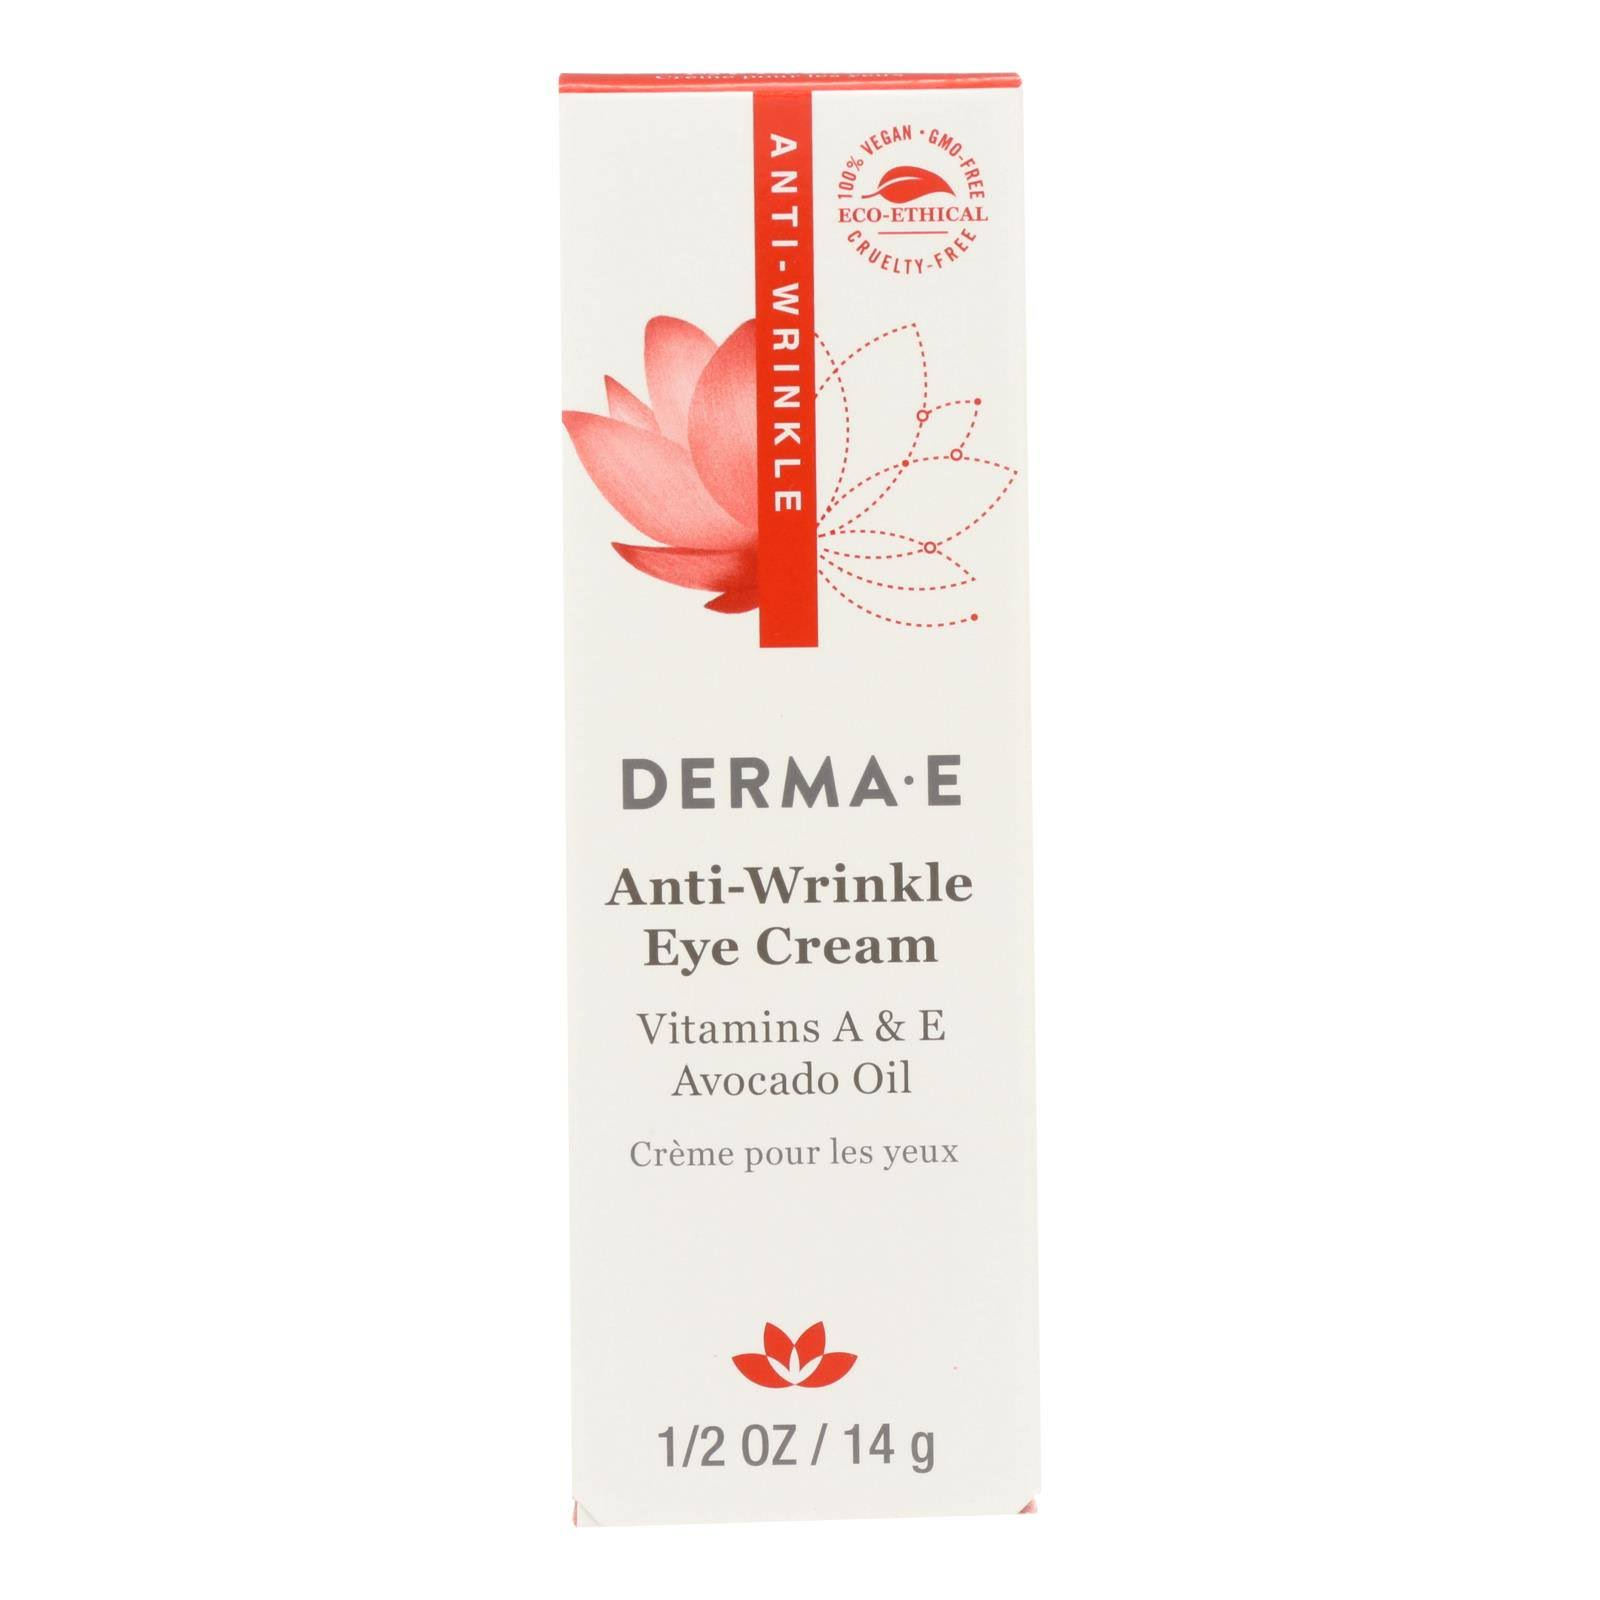 Derma E Anti-Wrinkle Vitamin A Eye Creme - 14g